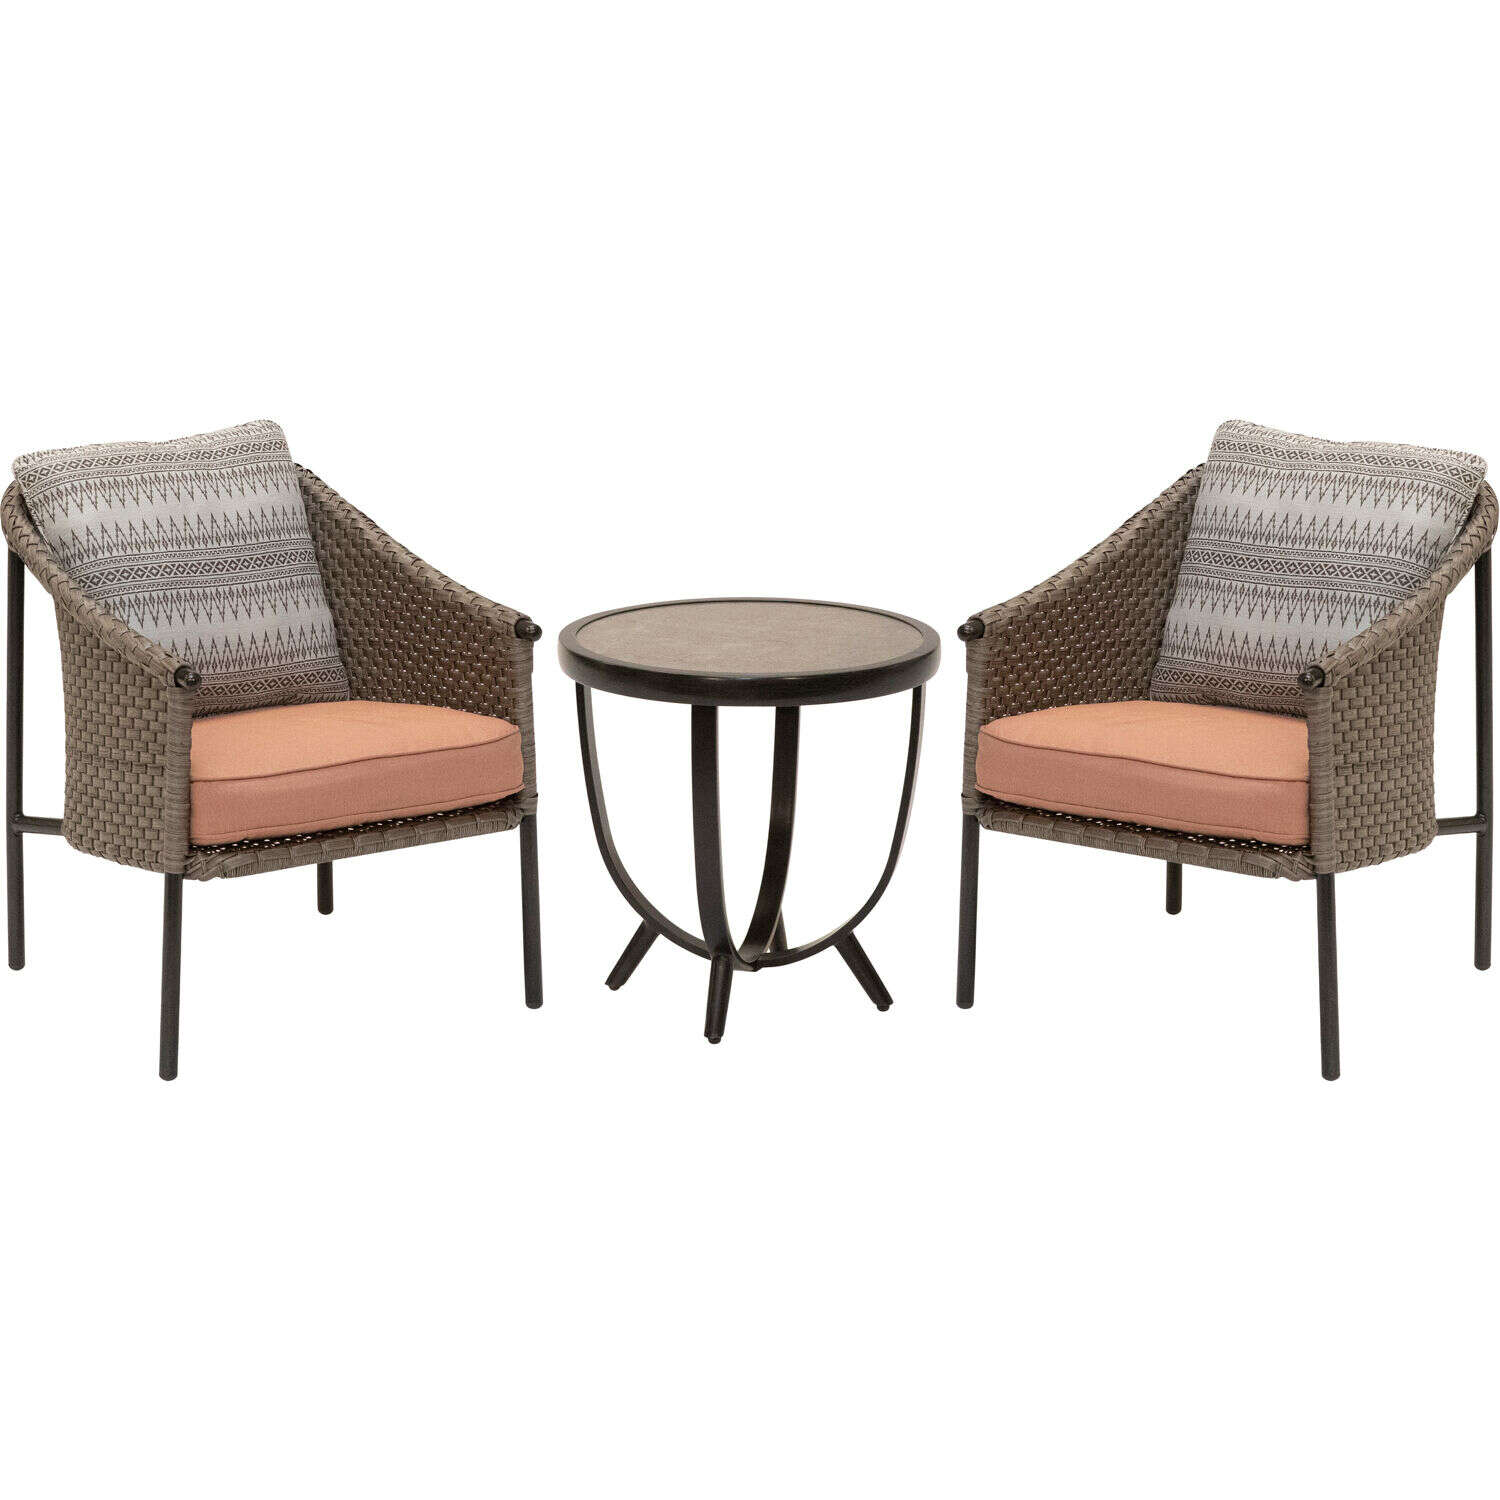 Mod  Santa fe  3 pc. Black  Steel  Patio Set  Desert Rose